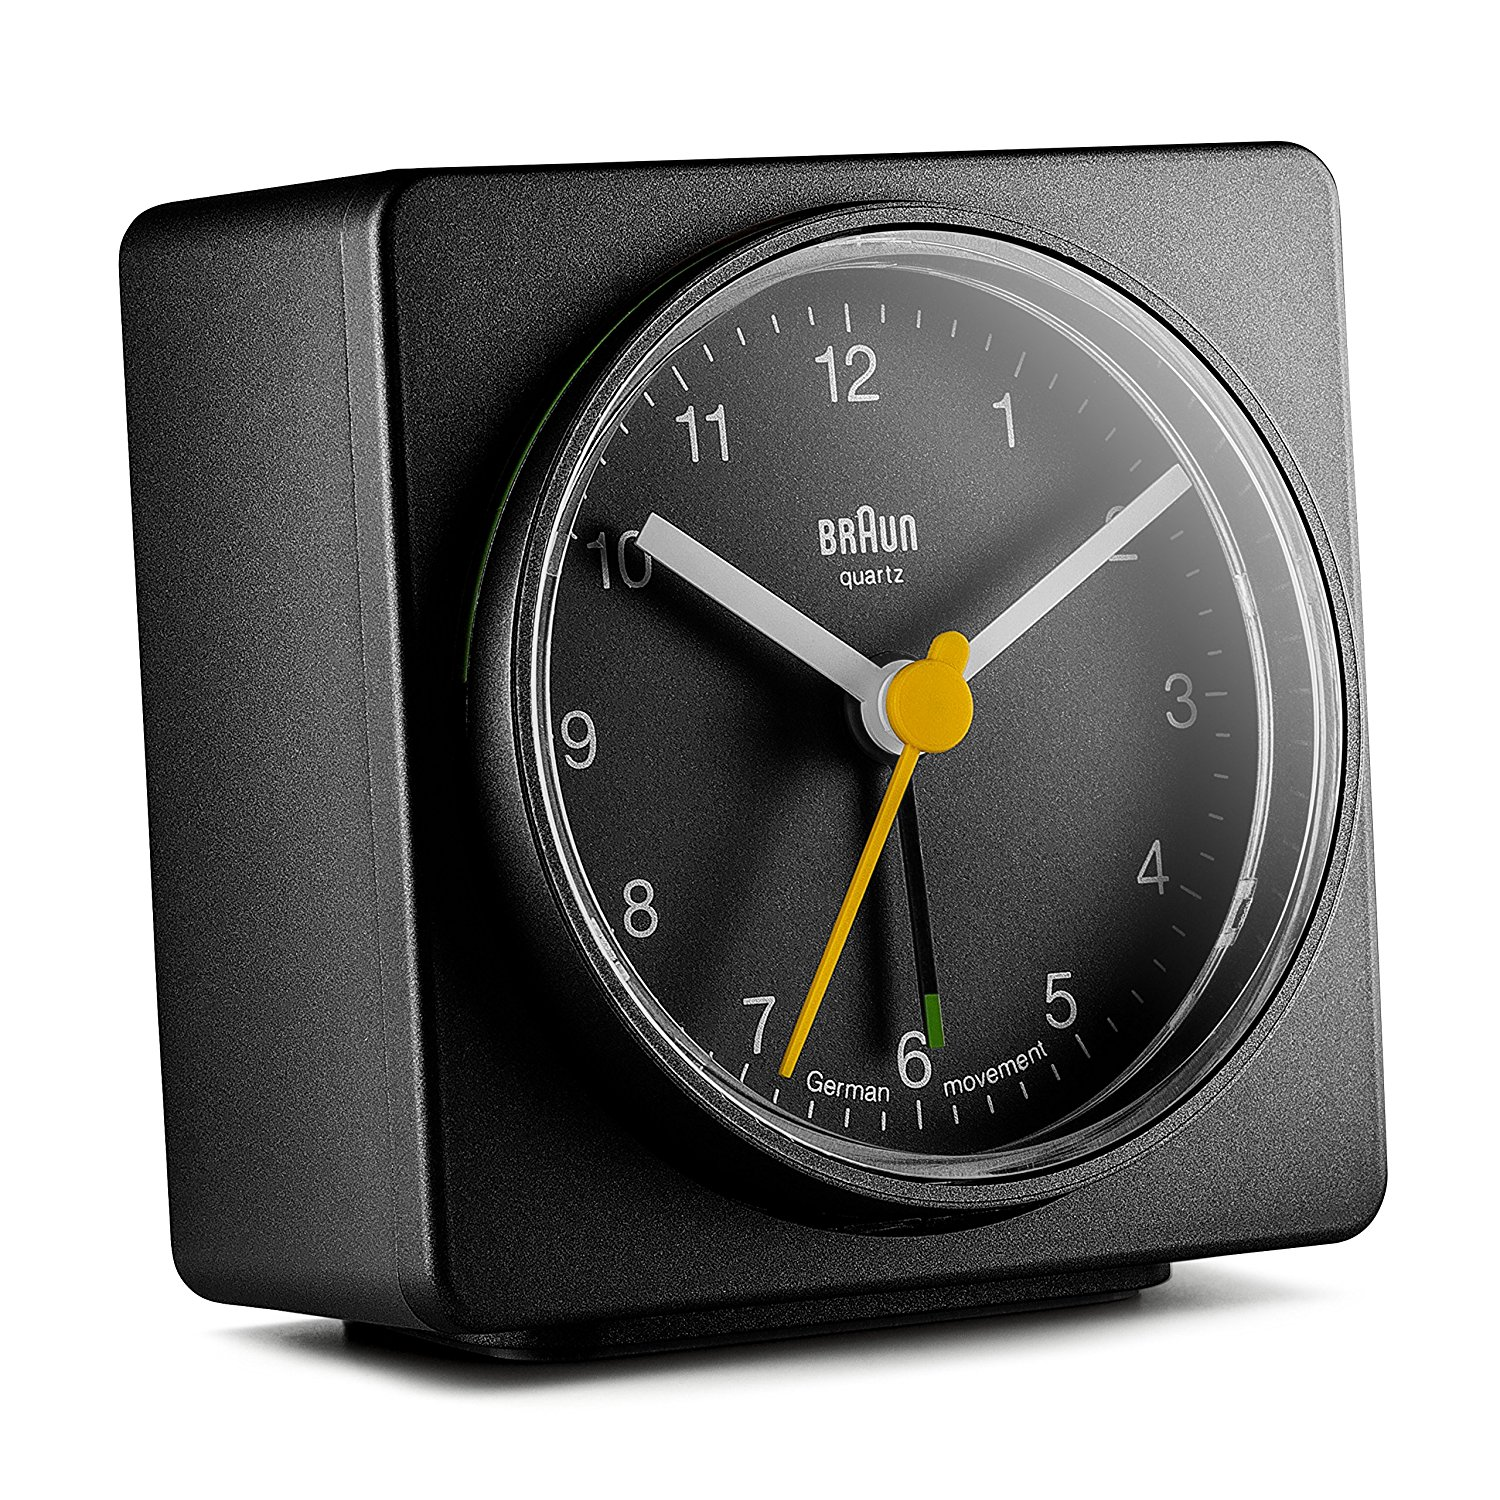 Braun Men's Square Alarm Clock